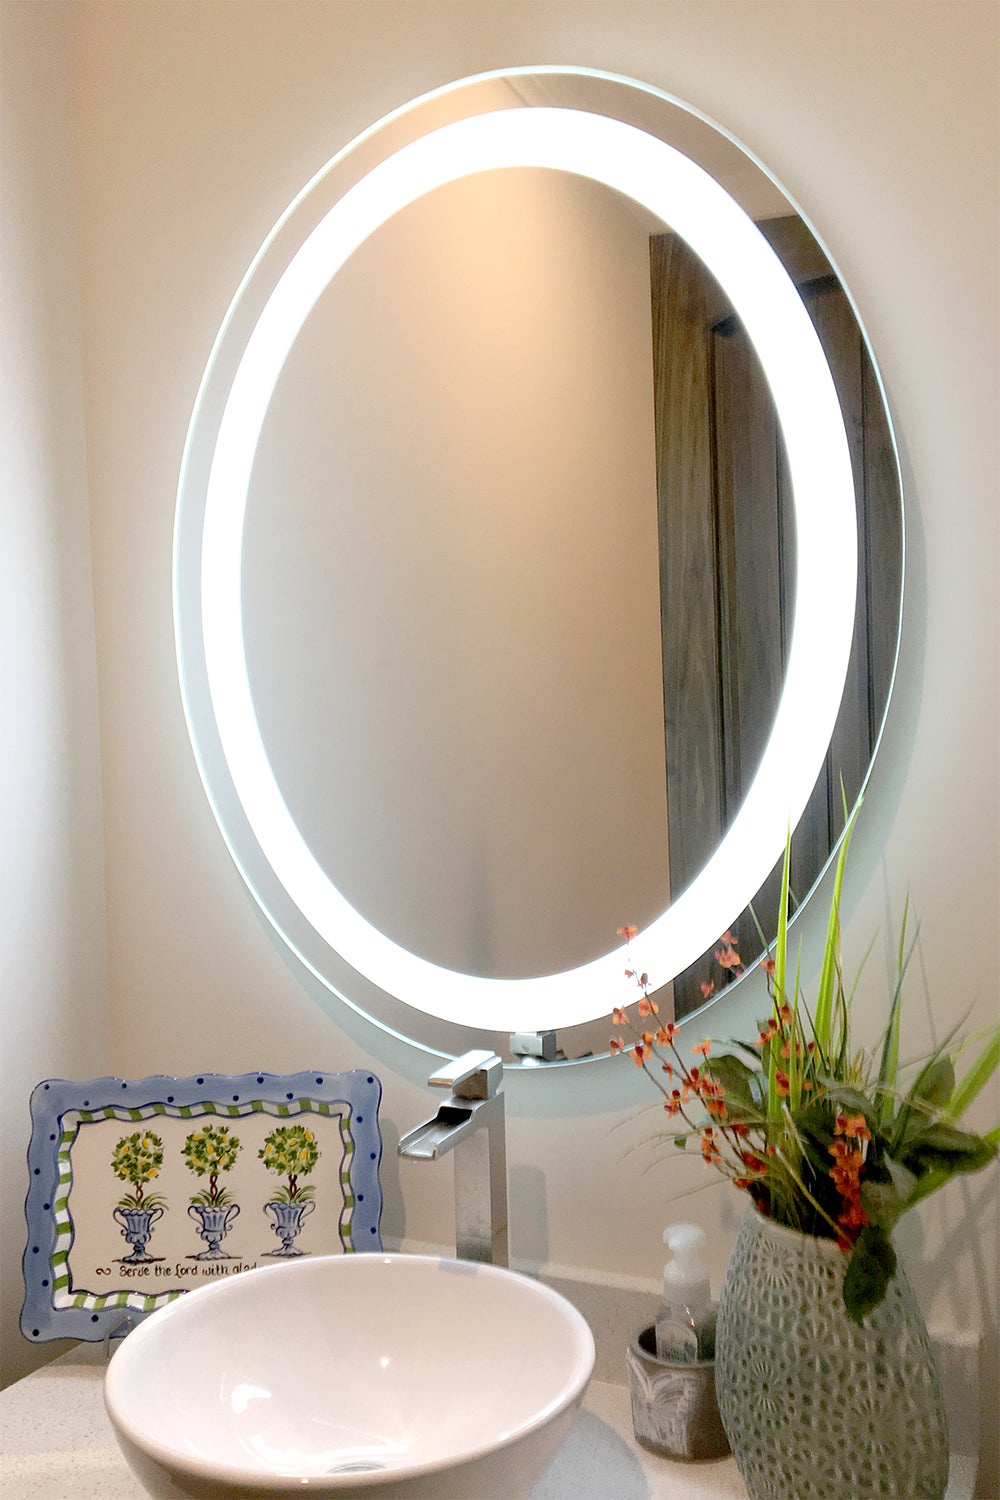 Front Lighted Led Bathroom Vanity Mirror 20 Quot X 28 Quot Oval